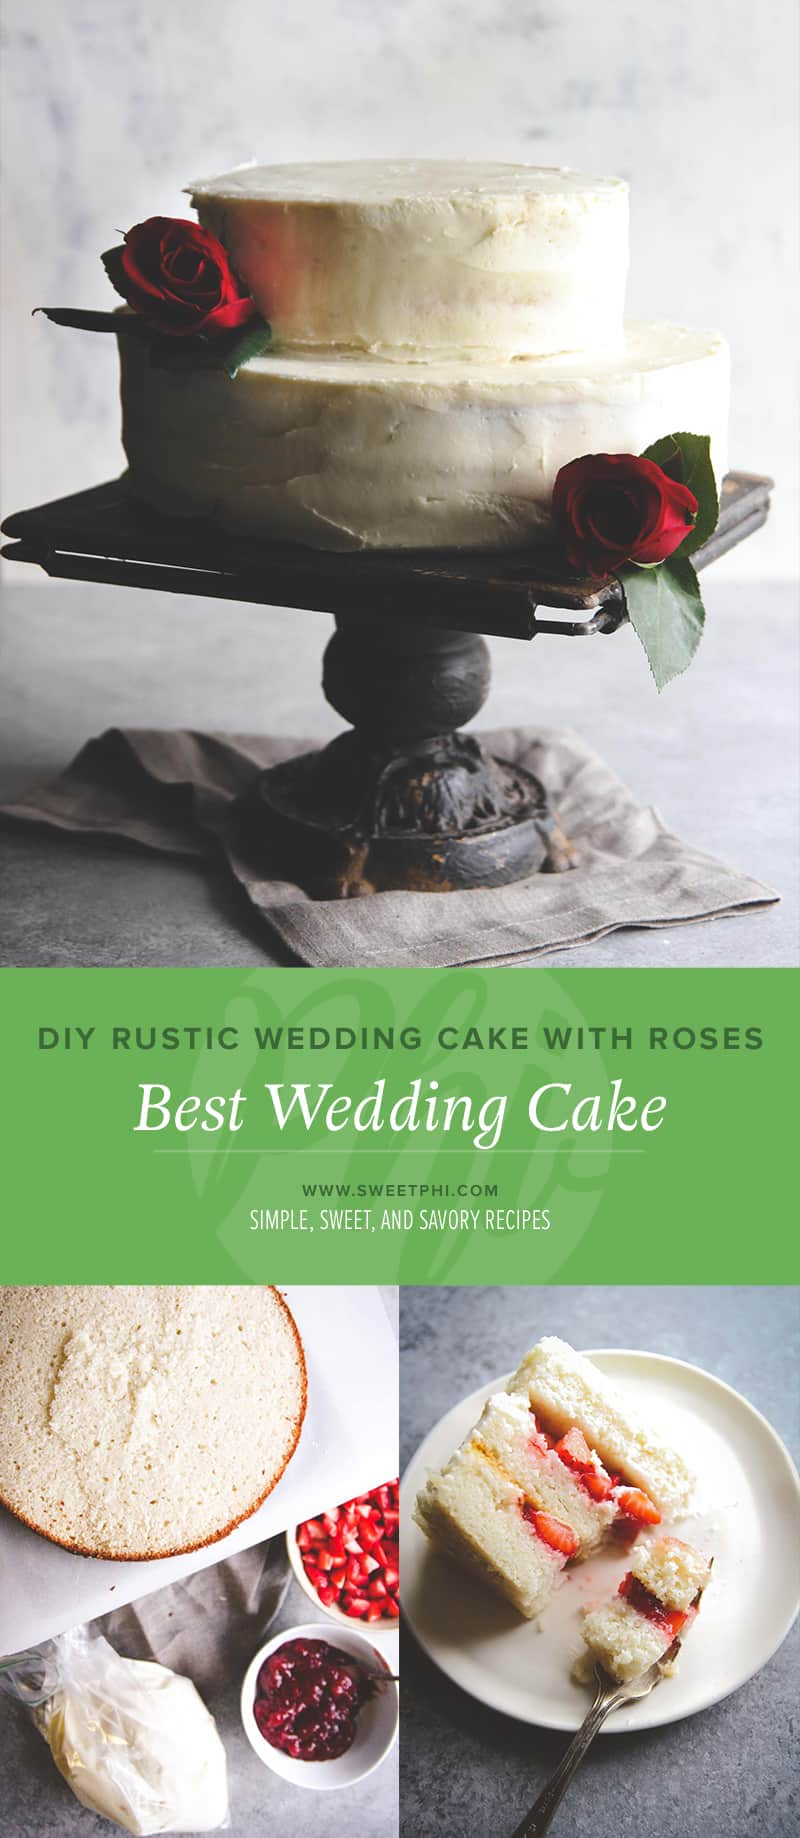 DIY rustic wedding cake with roses. Best wedding cake. DIY wedding cake from @sweetphi